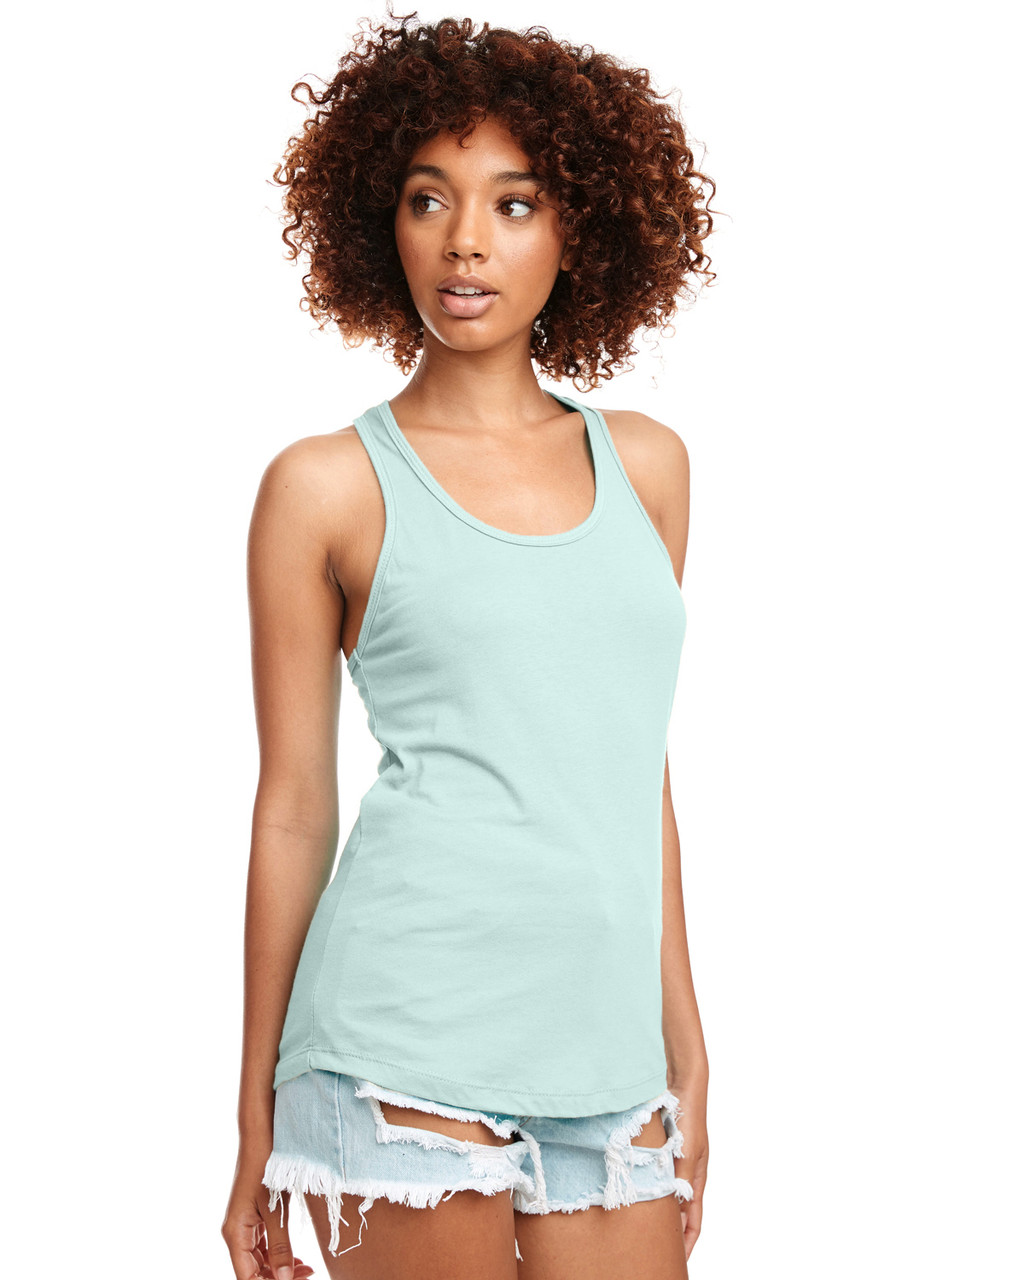 Mint - N1533 Next Level Ideal Racerback Tank Top | Blankclothing.ca